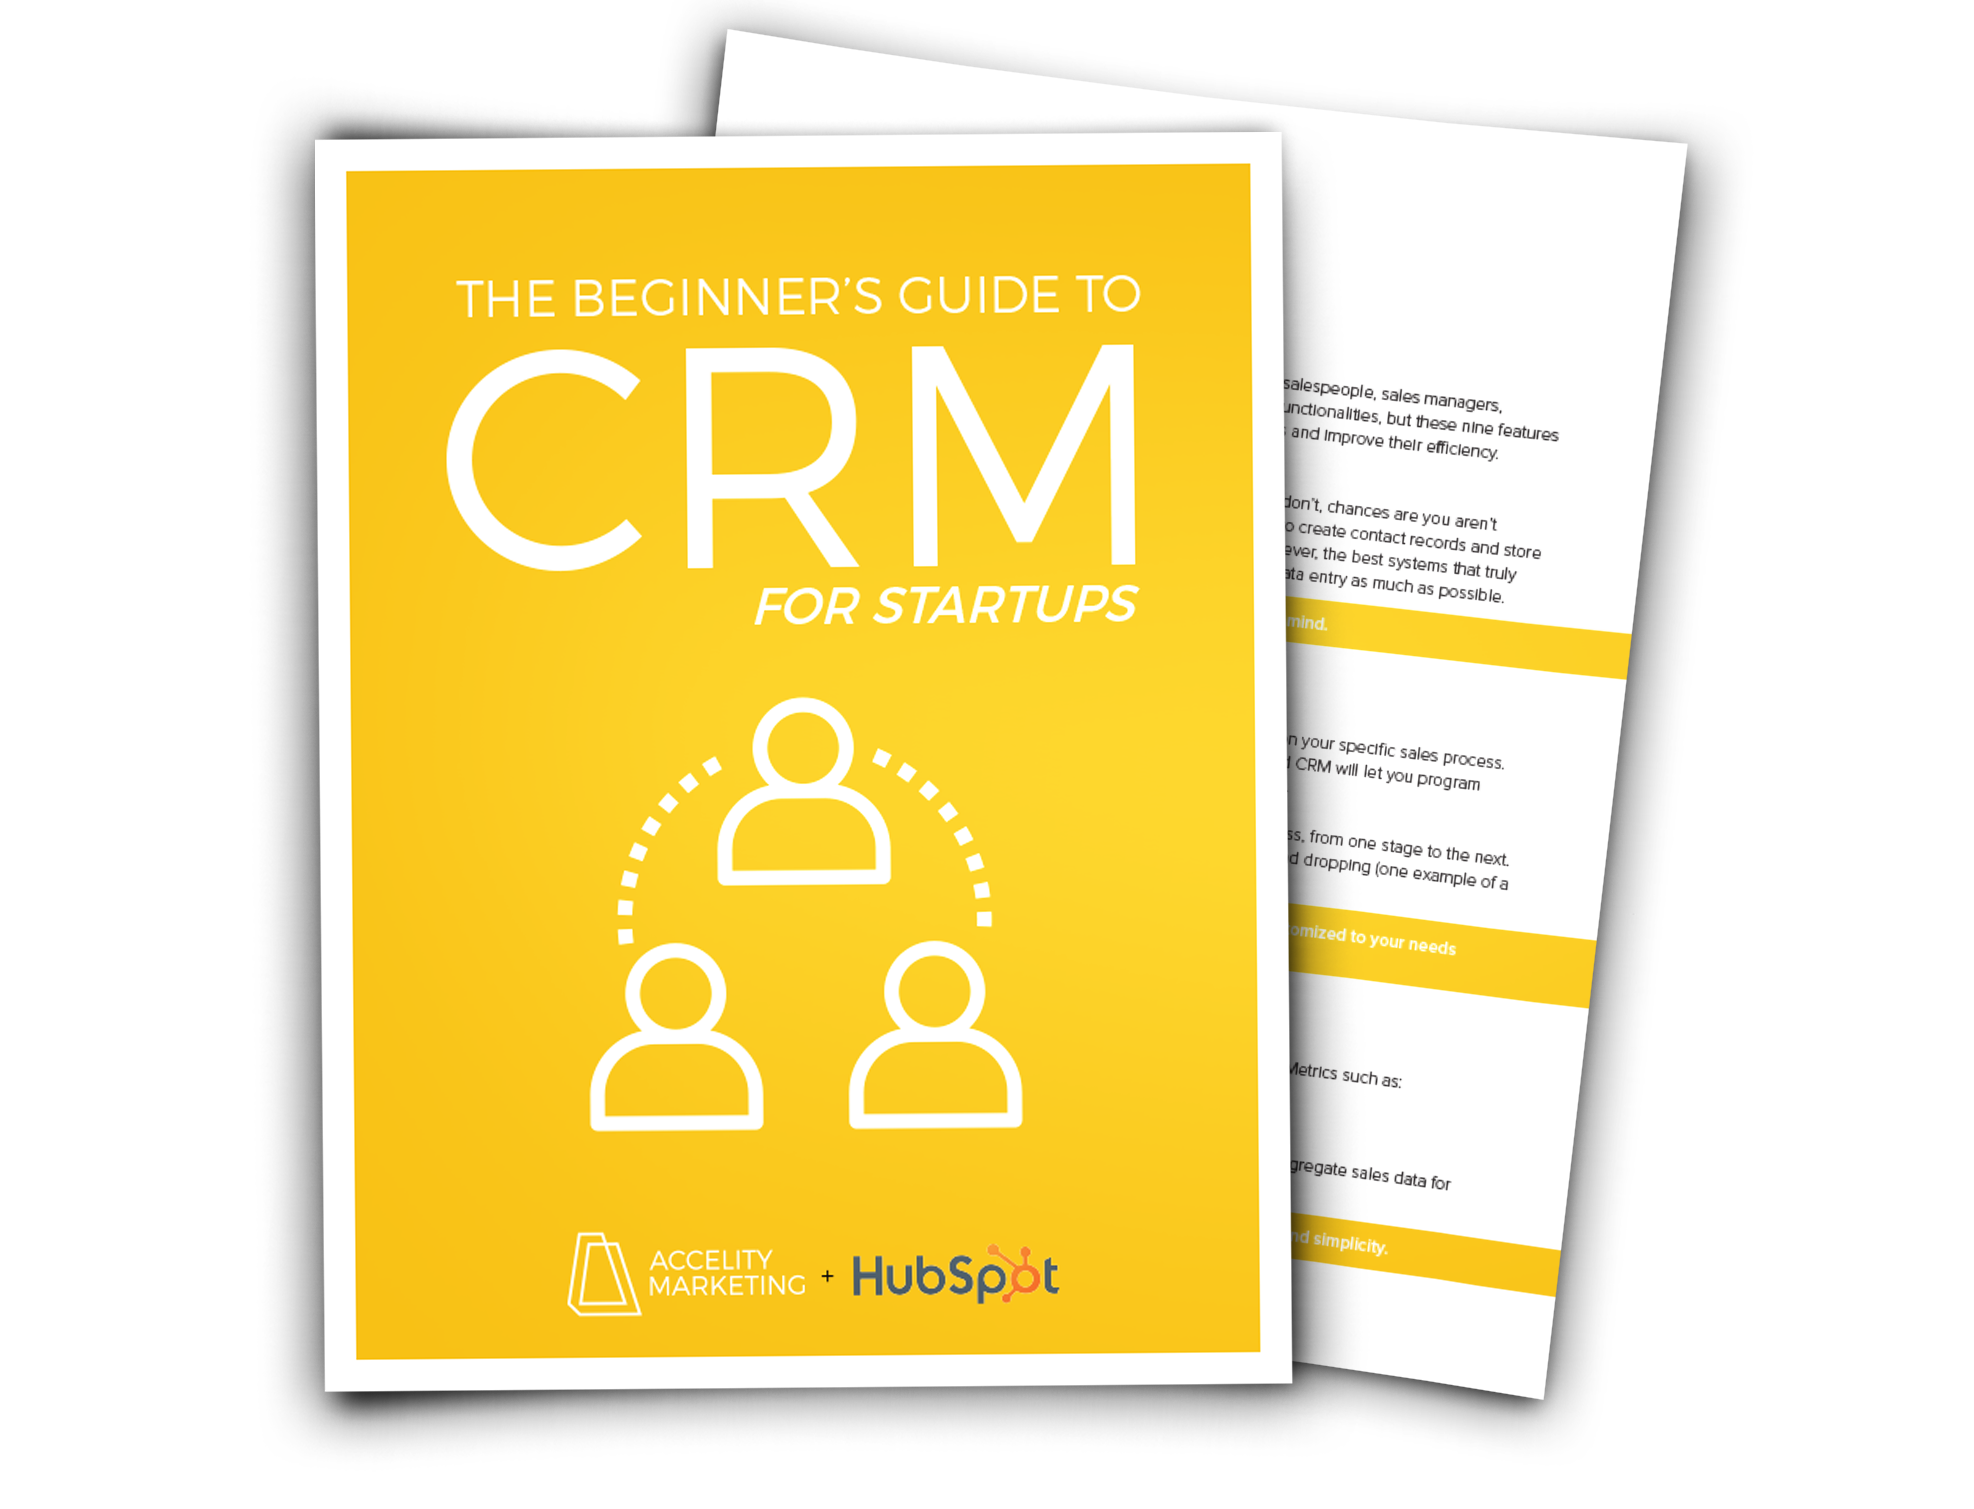 The Beginner's Guide to CRM For Startups